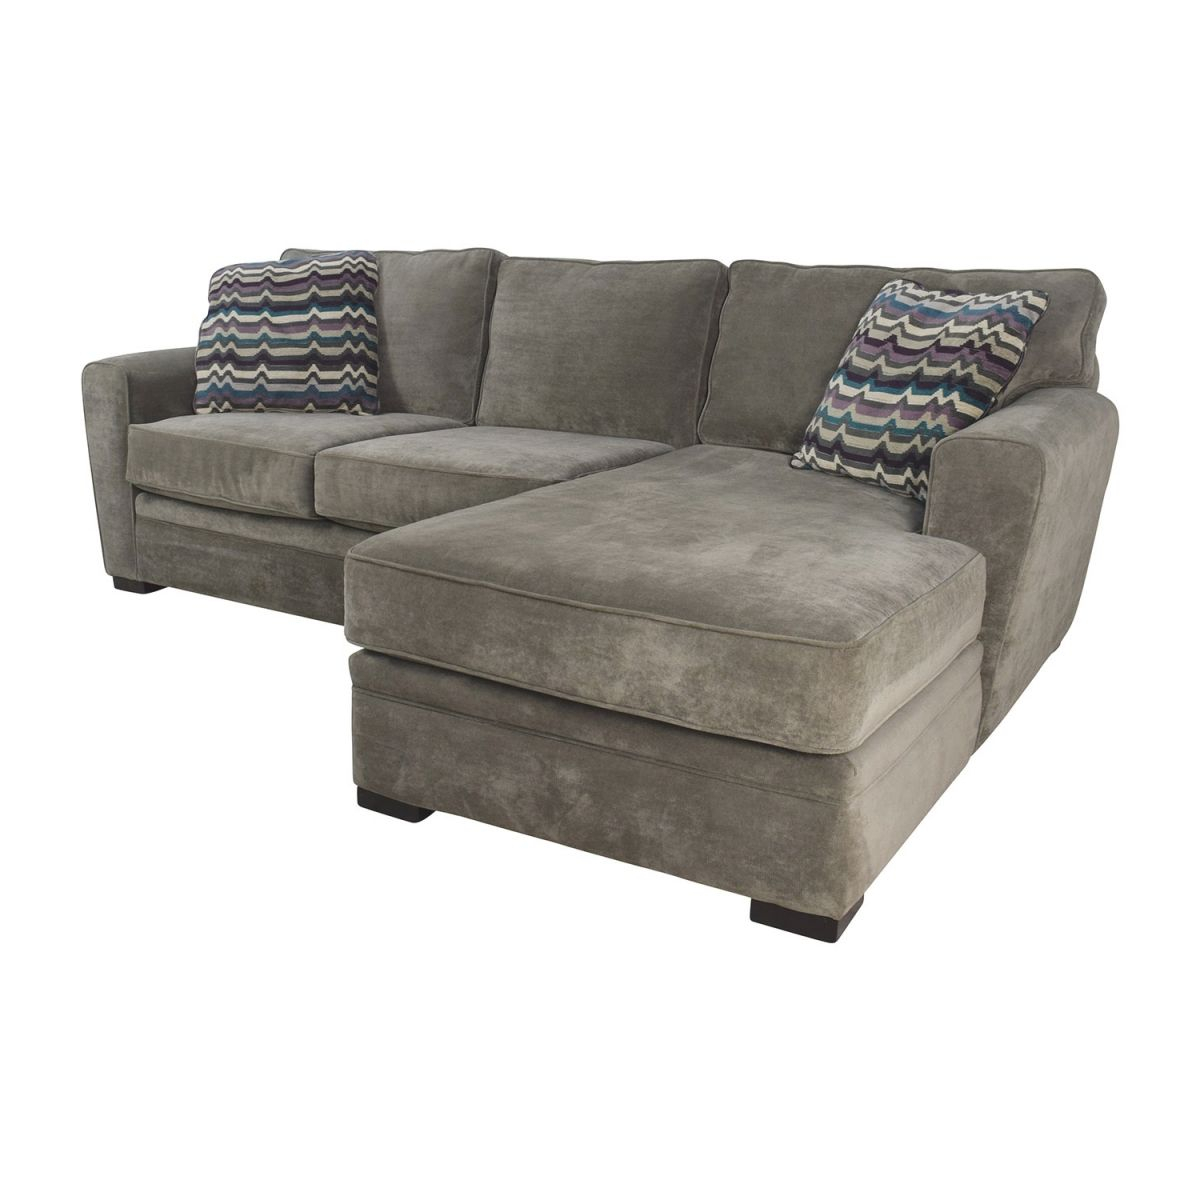 20 Collection Of Raymour And Flanigan Sectional Sofas within Lovely Raymour And Flanigan Sectional Sofas